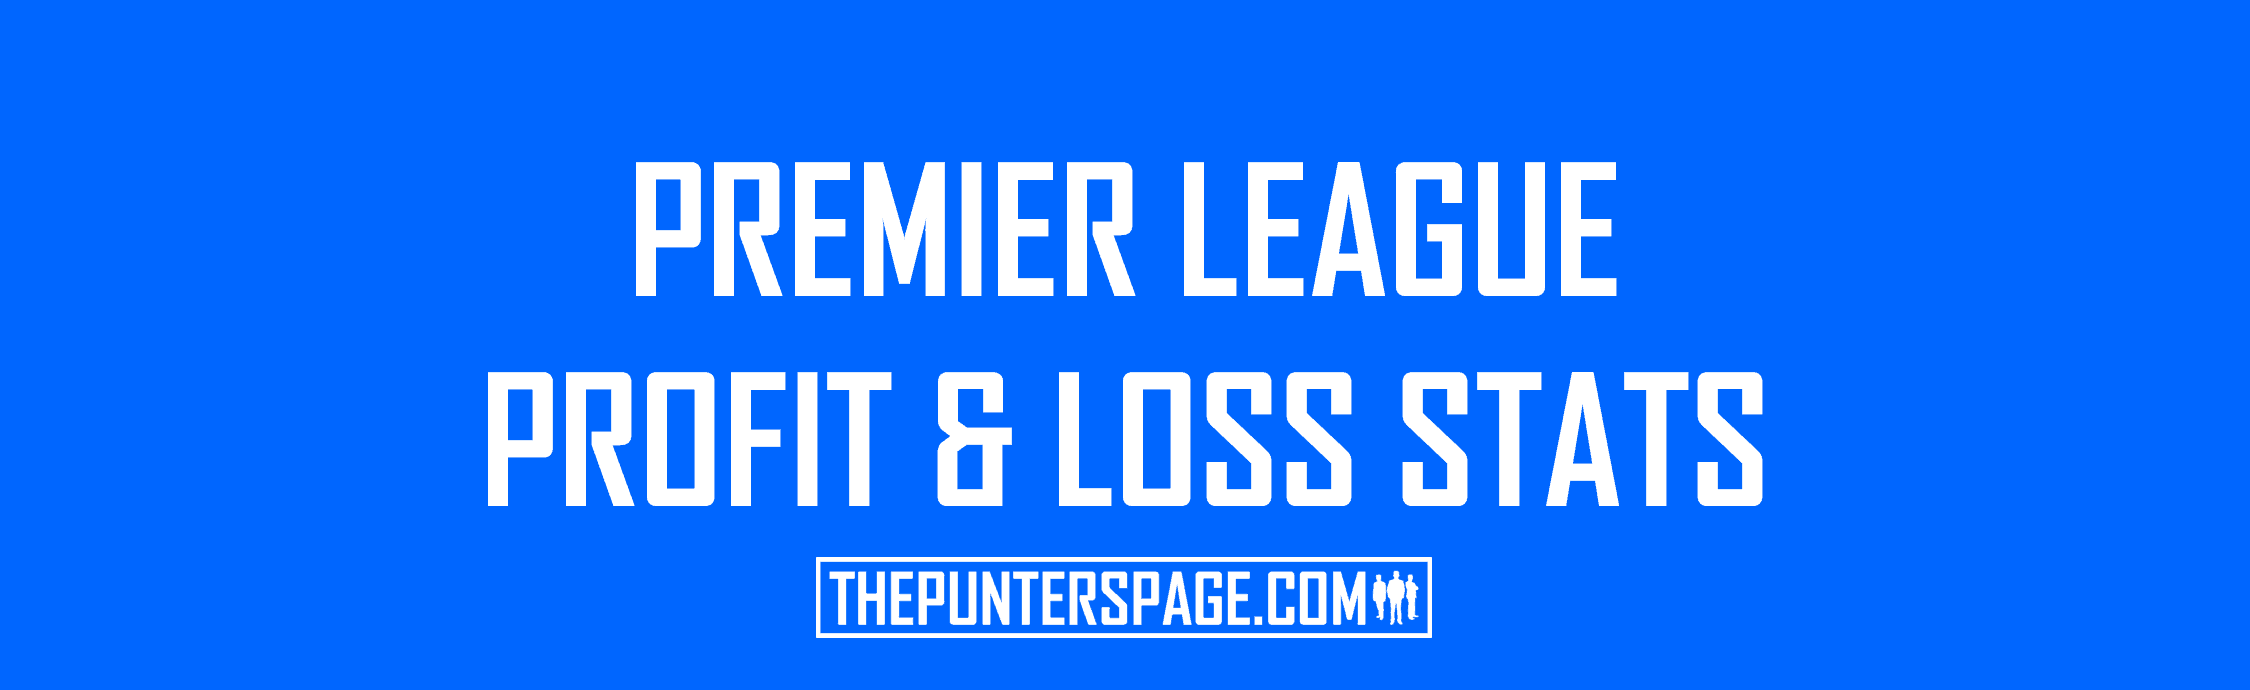 Premier League Profit & Loss Stats Table